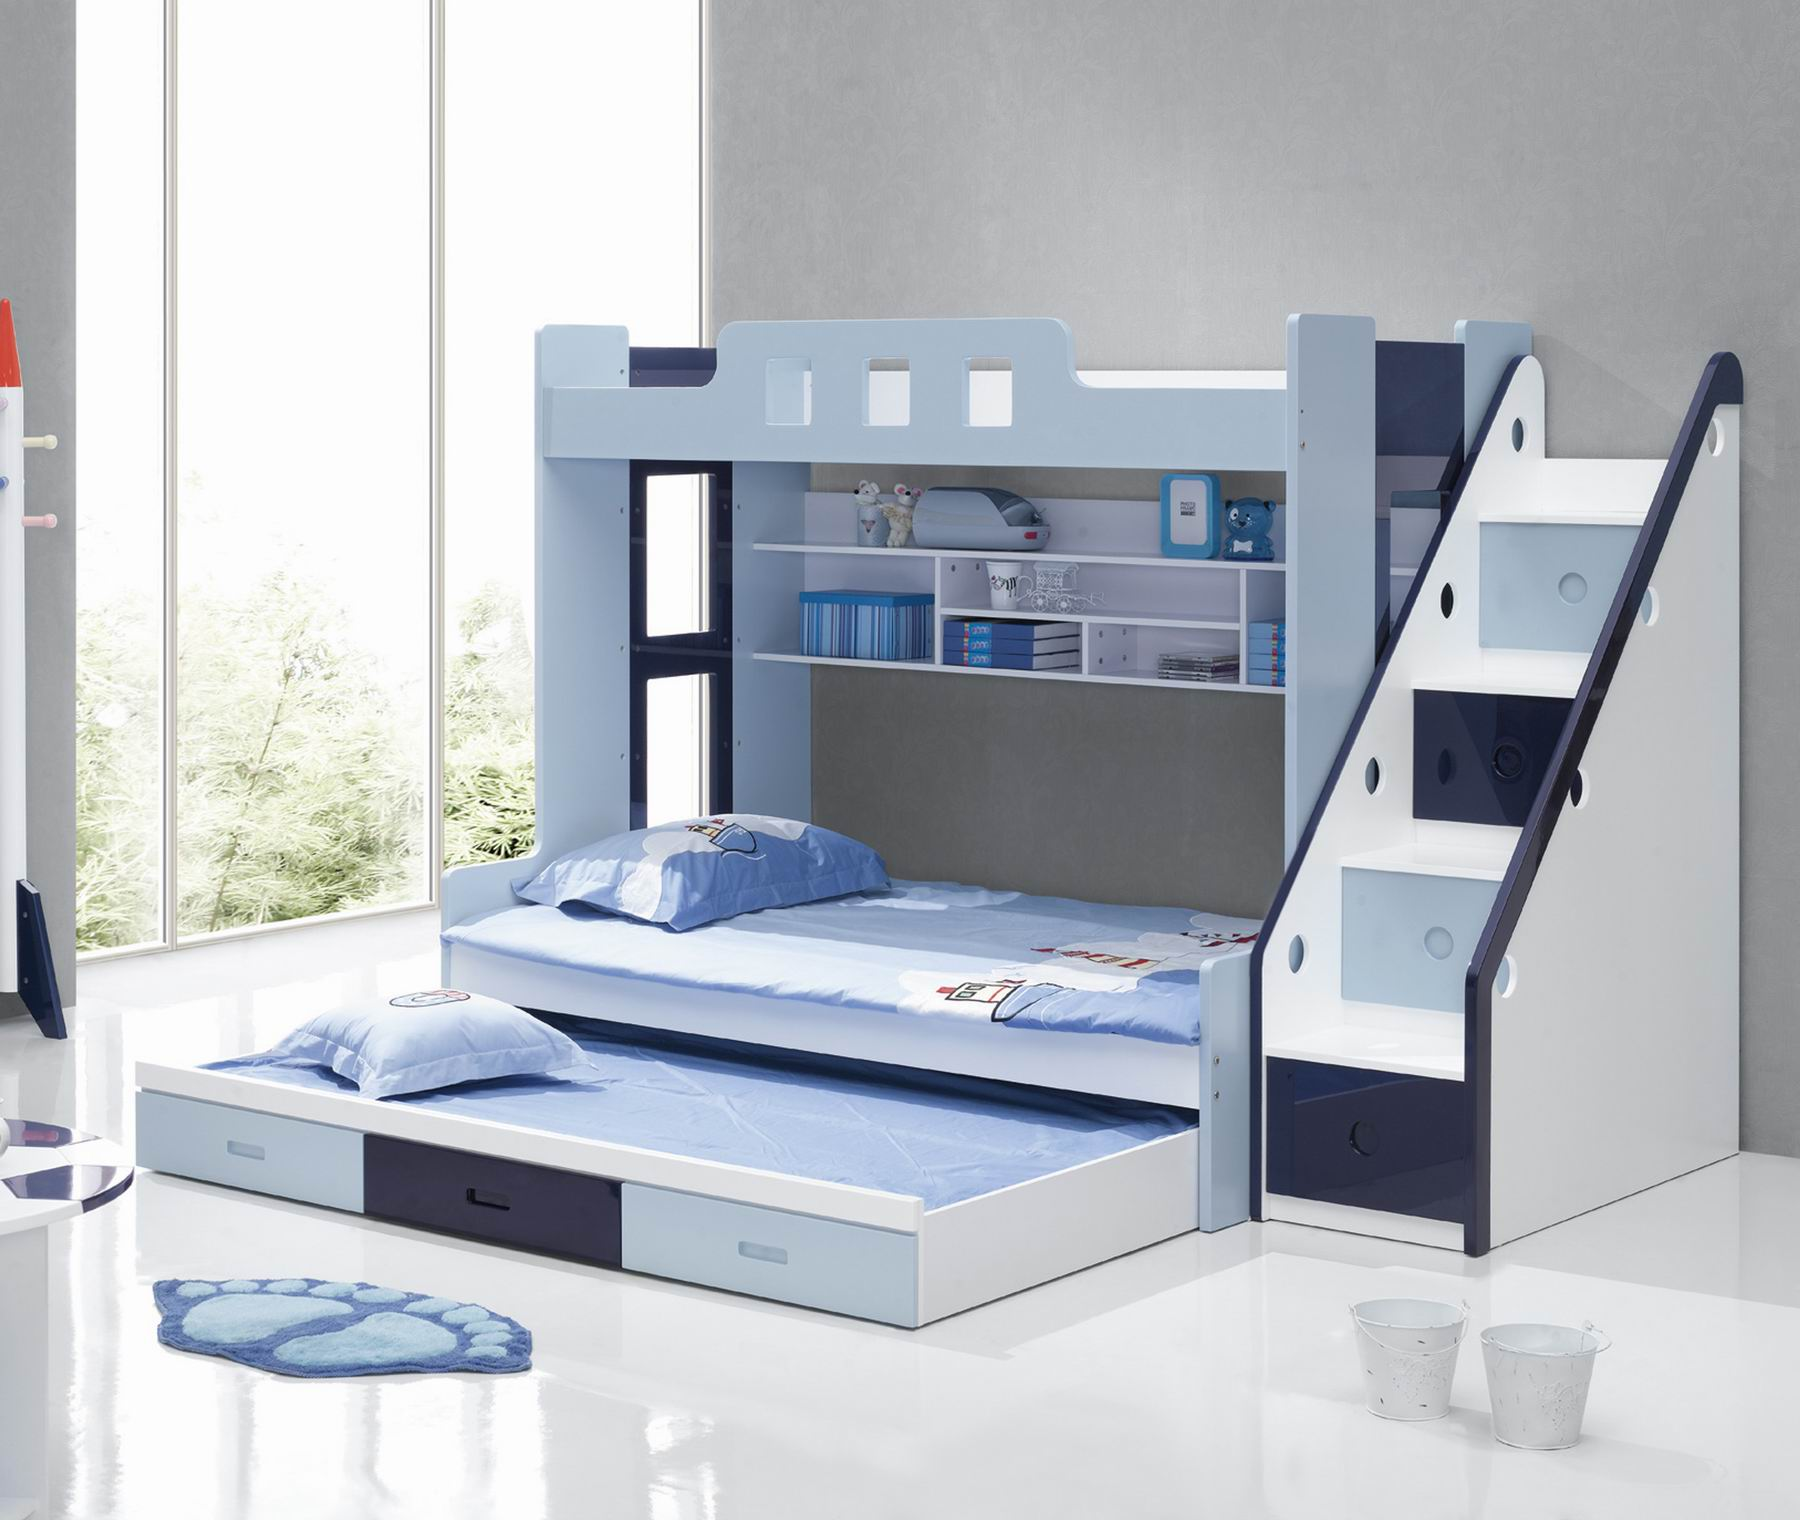 Cool Bunk Beds For Kids 25 diy bunk beds with plans | guide patterns